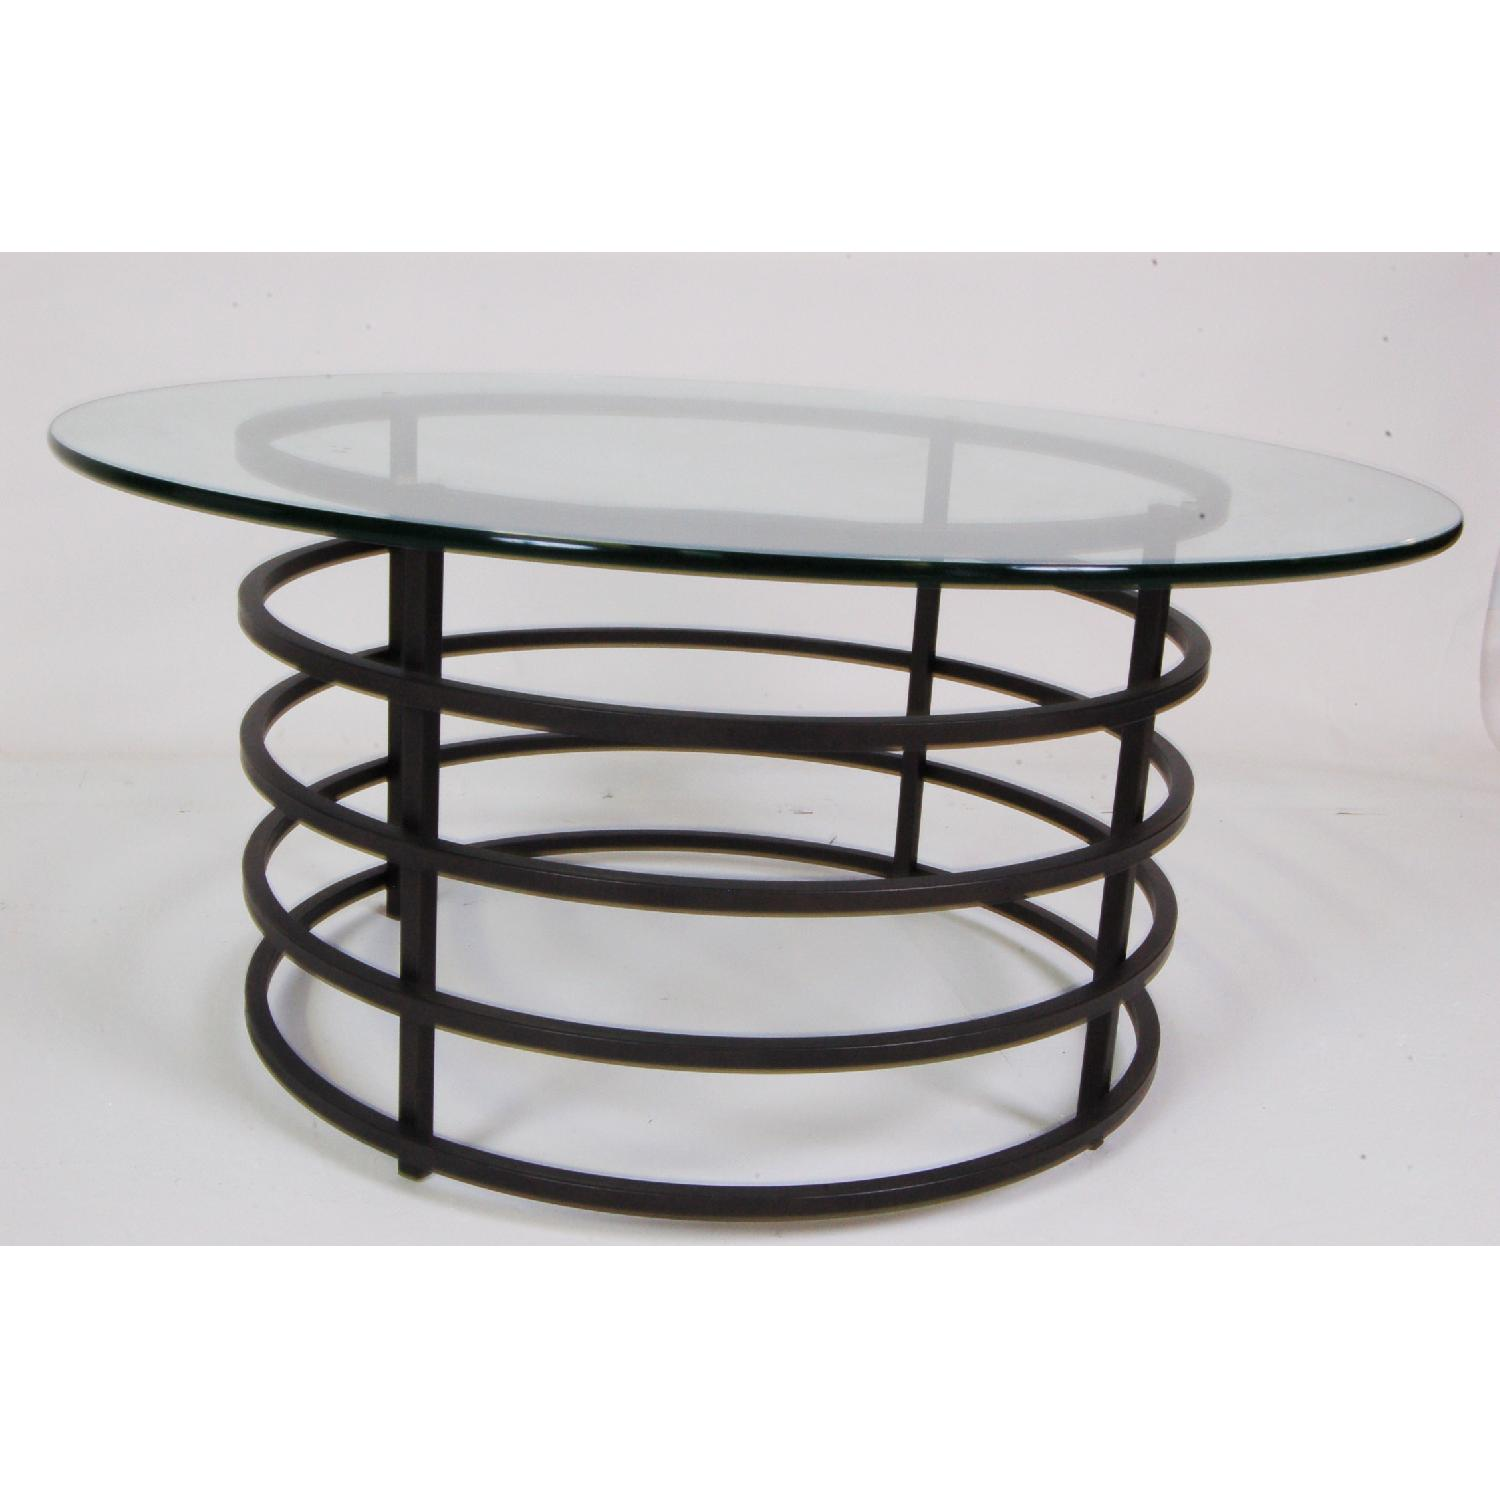 Modern Round Glass-Top Coffee Table - image-3